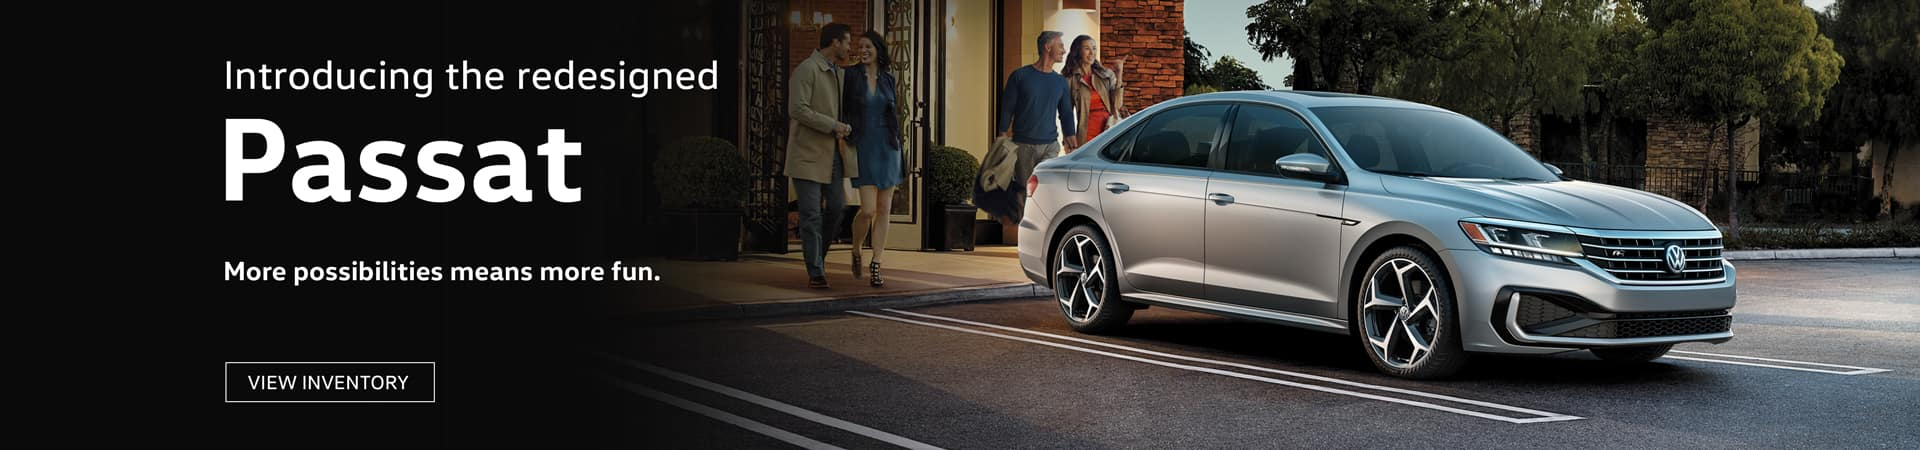 Come and see the All New Redesigned 2020 Passat at Timmons Volkswagen Long Beach